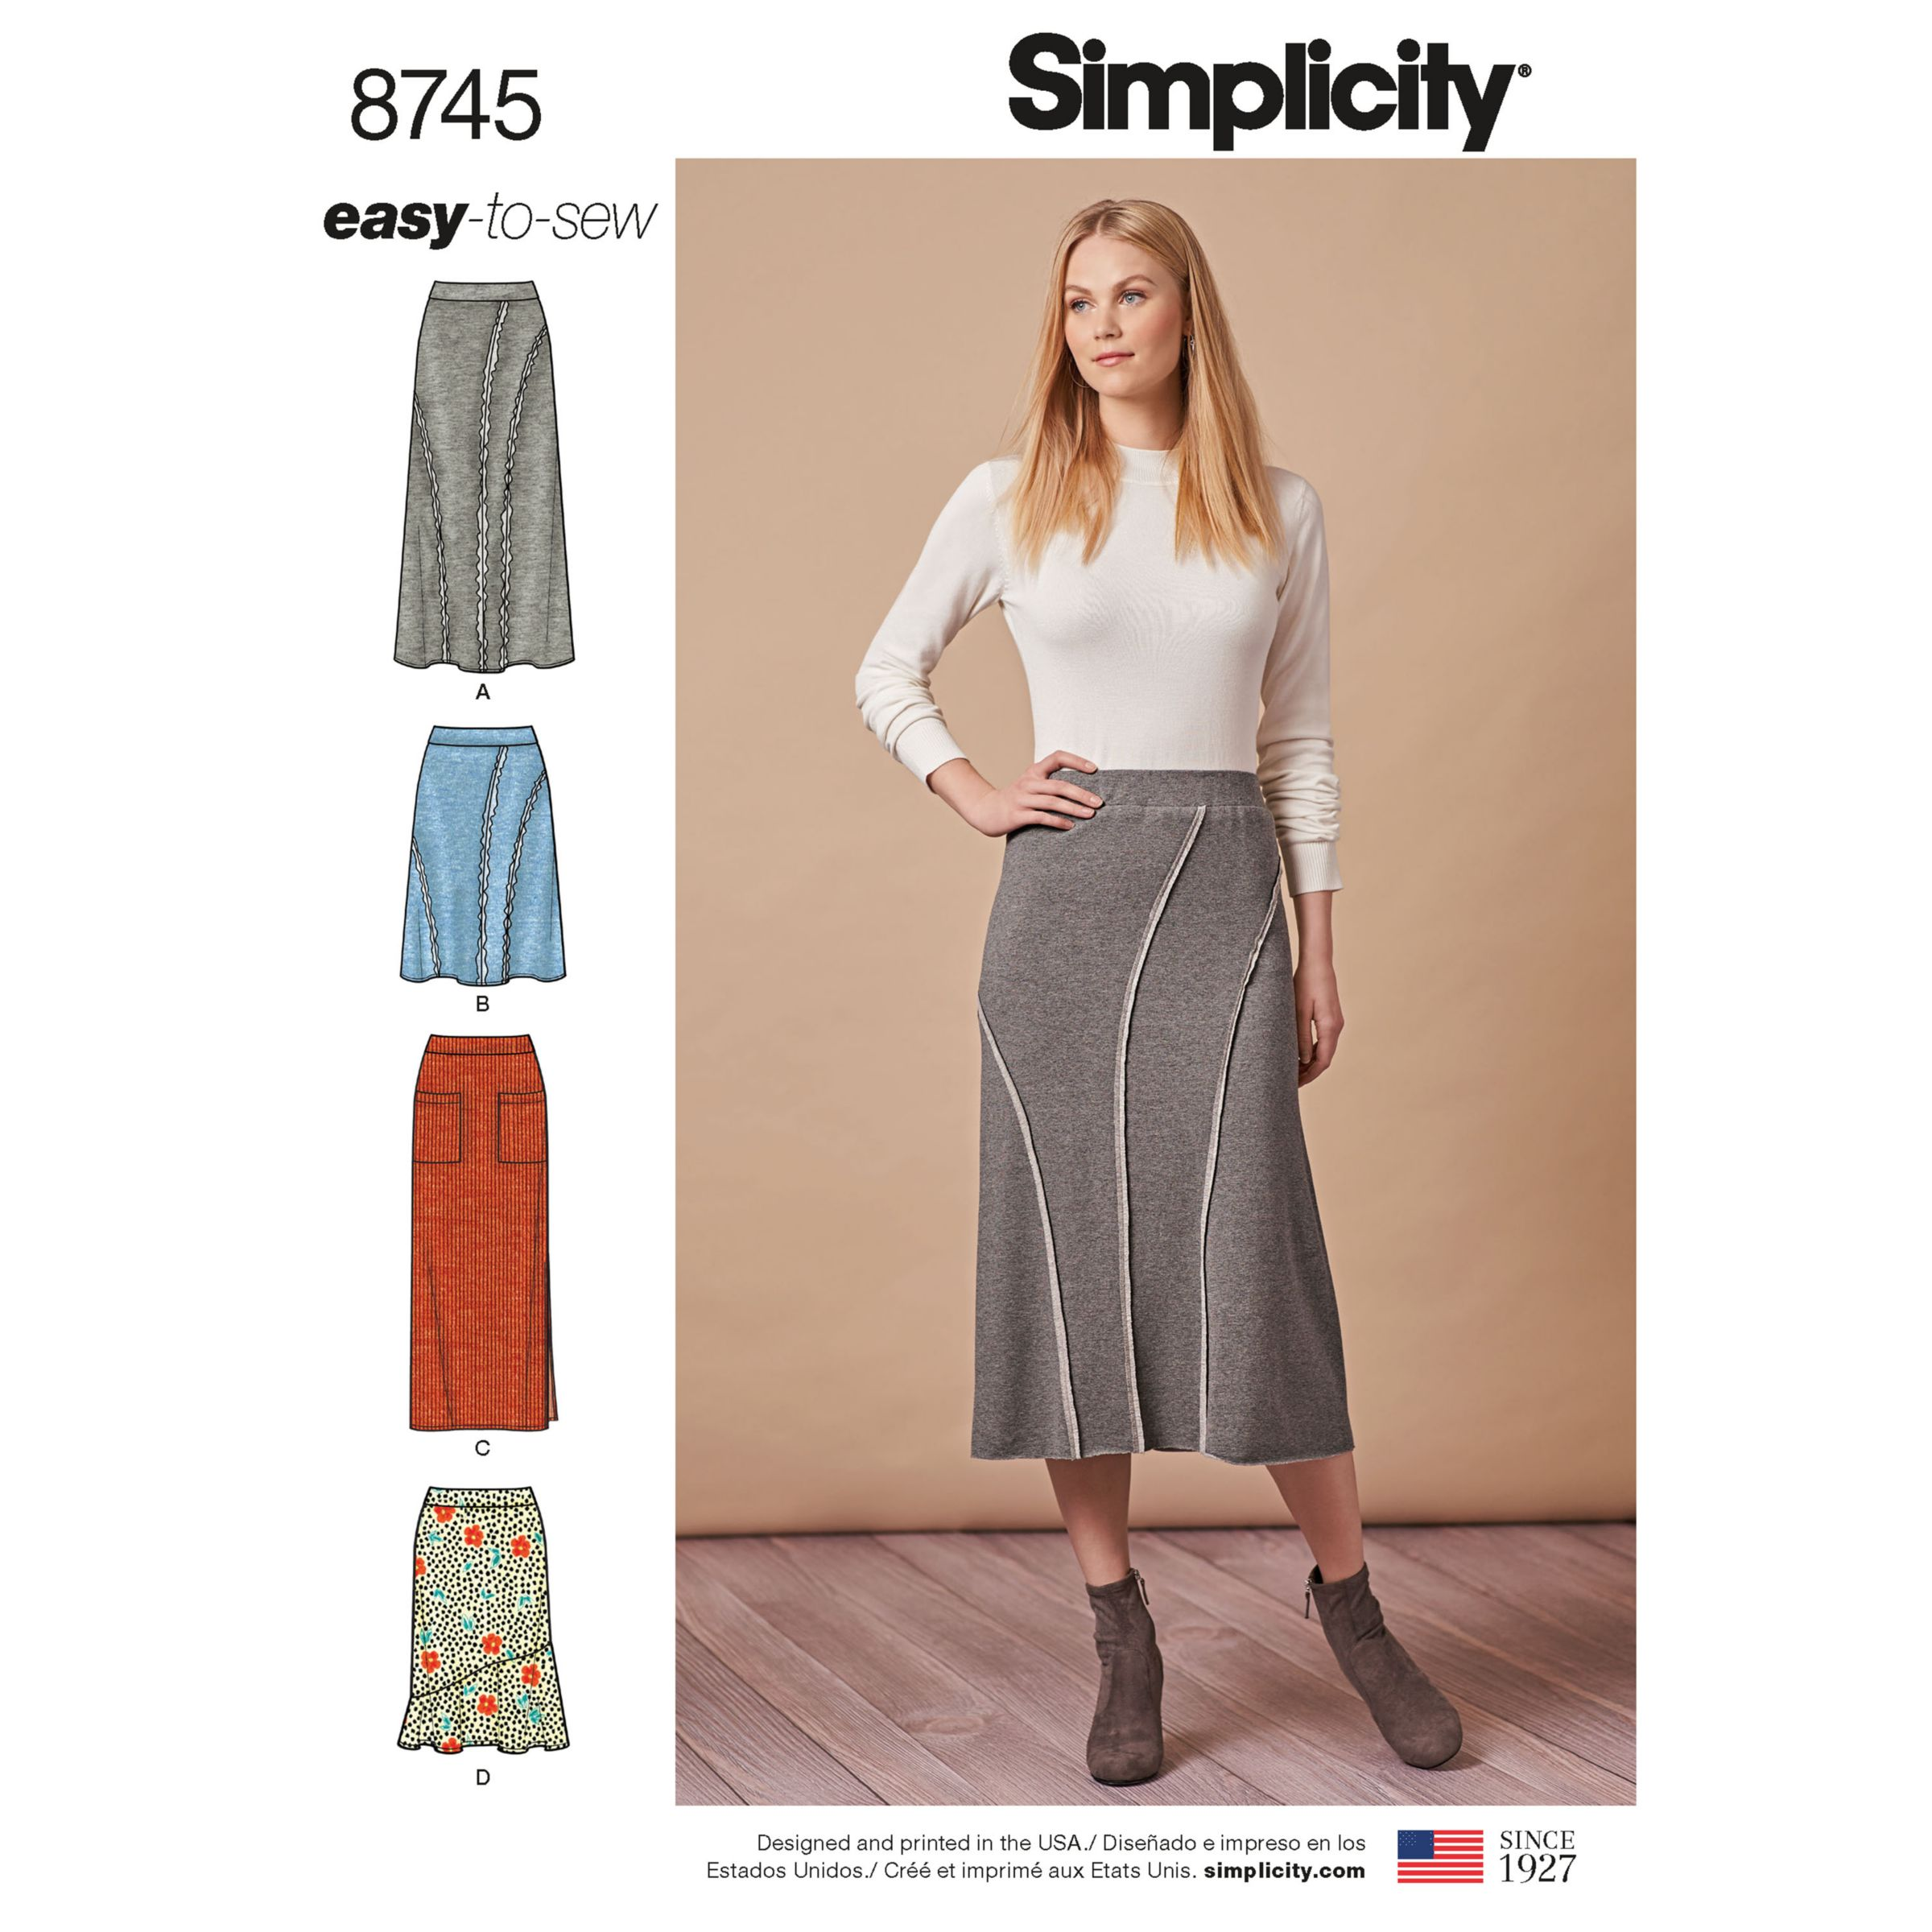 Simplicity Easy Sew Knit Skirts Sewing Pattern, 8745, XS-XL